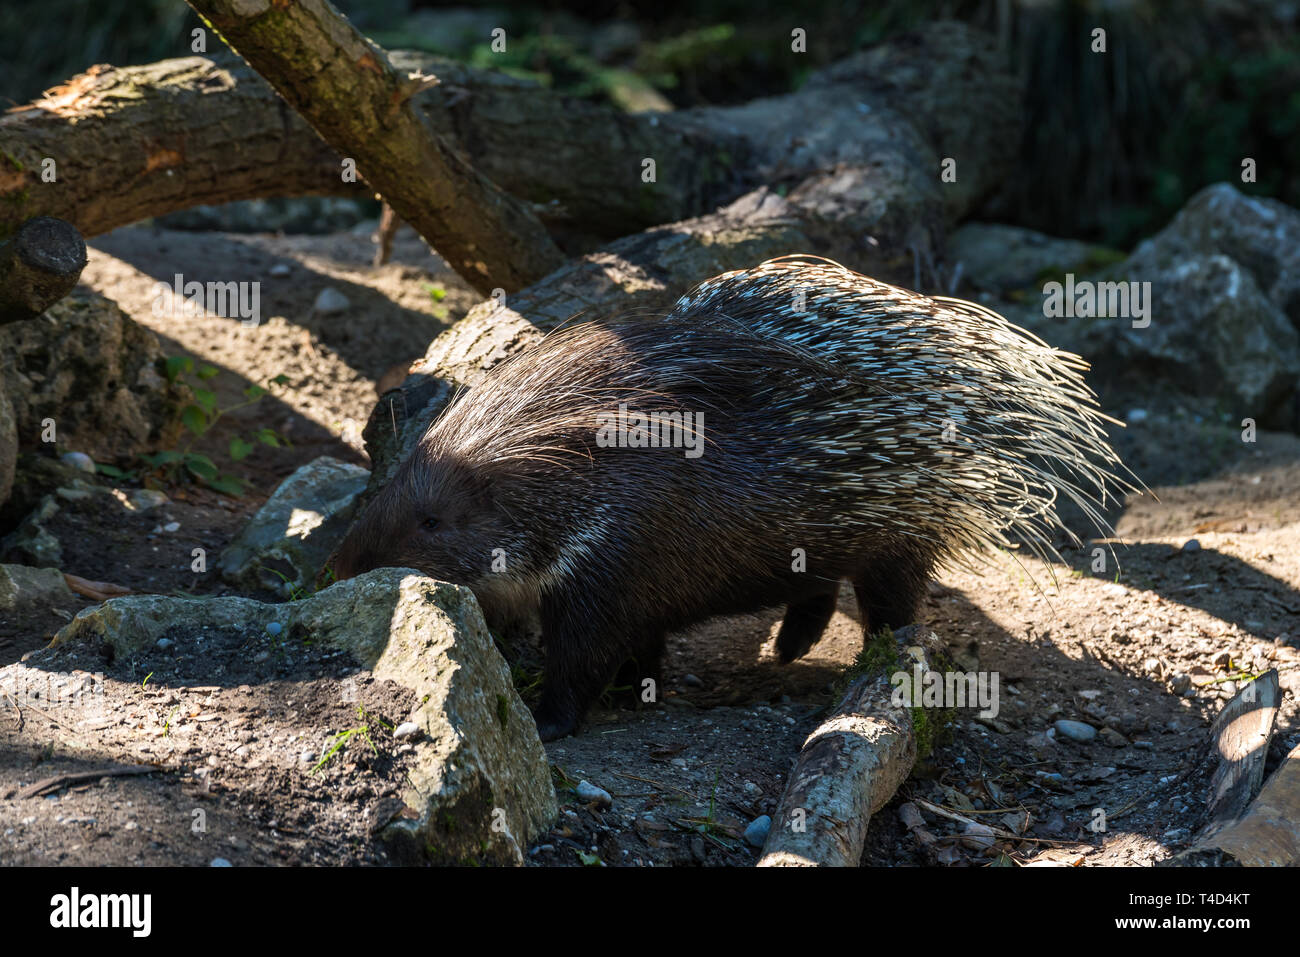 The Indian crested Porcupine, Hystrix indica or Indian porcupine, is a large species of hystricomorph rodent belonging to the Old World porcupine fami - Stock Image